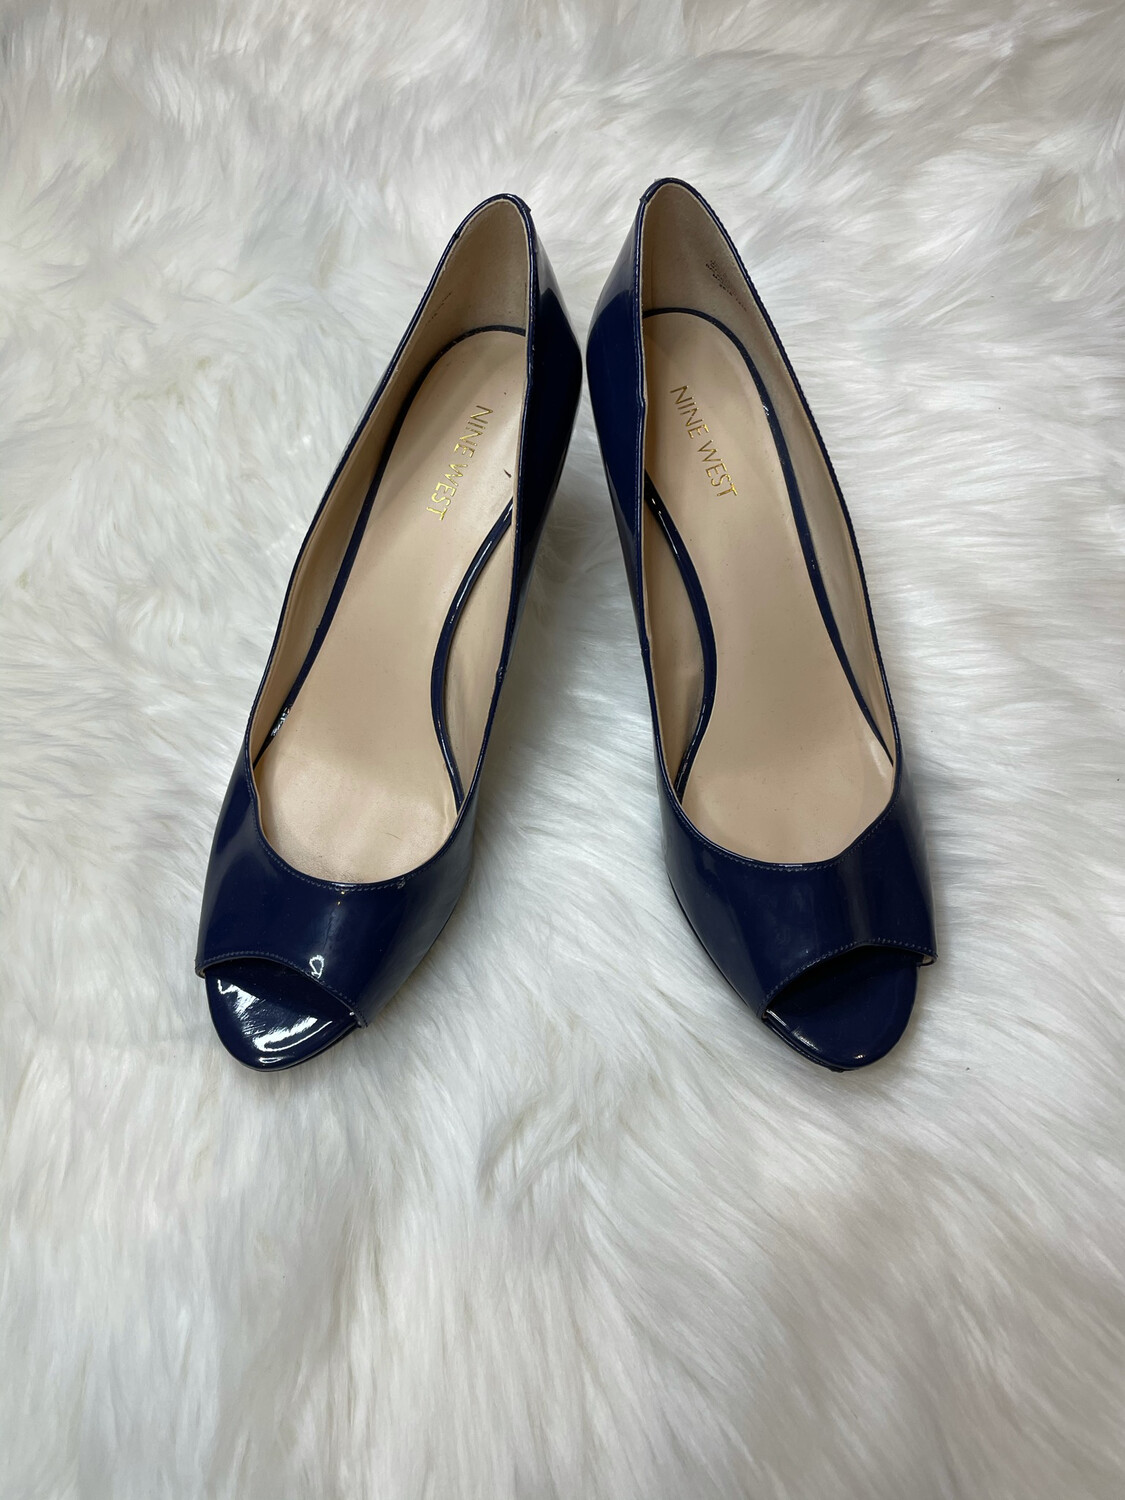 Nine West Navy Patent Peep Heels - Size 9.5